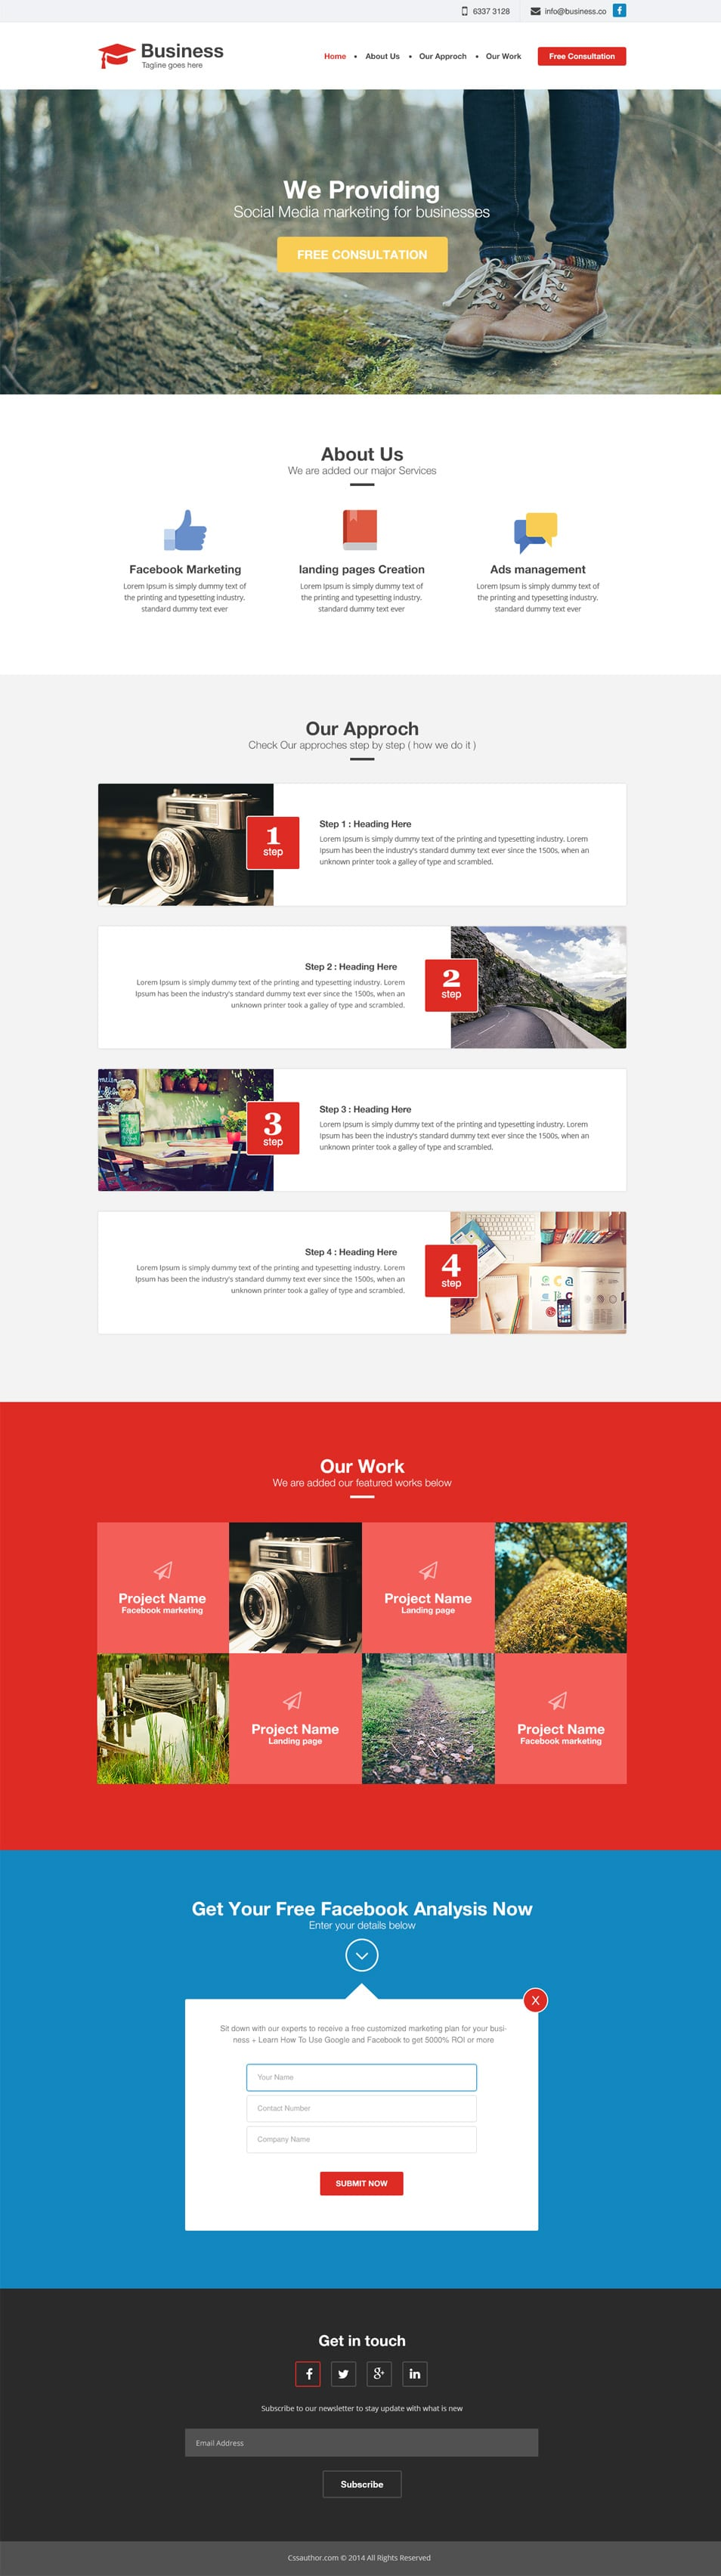 Agency business website template psd css author download source file format psd accmission Choice Image